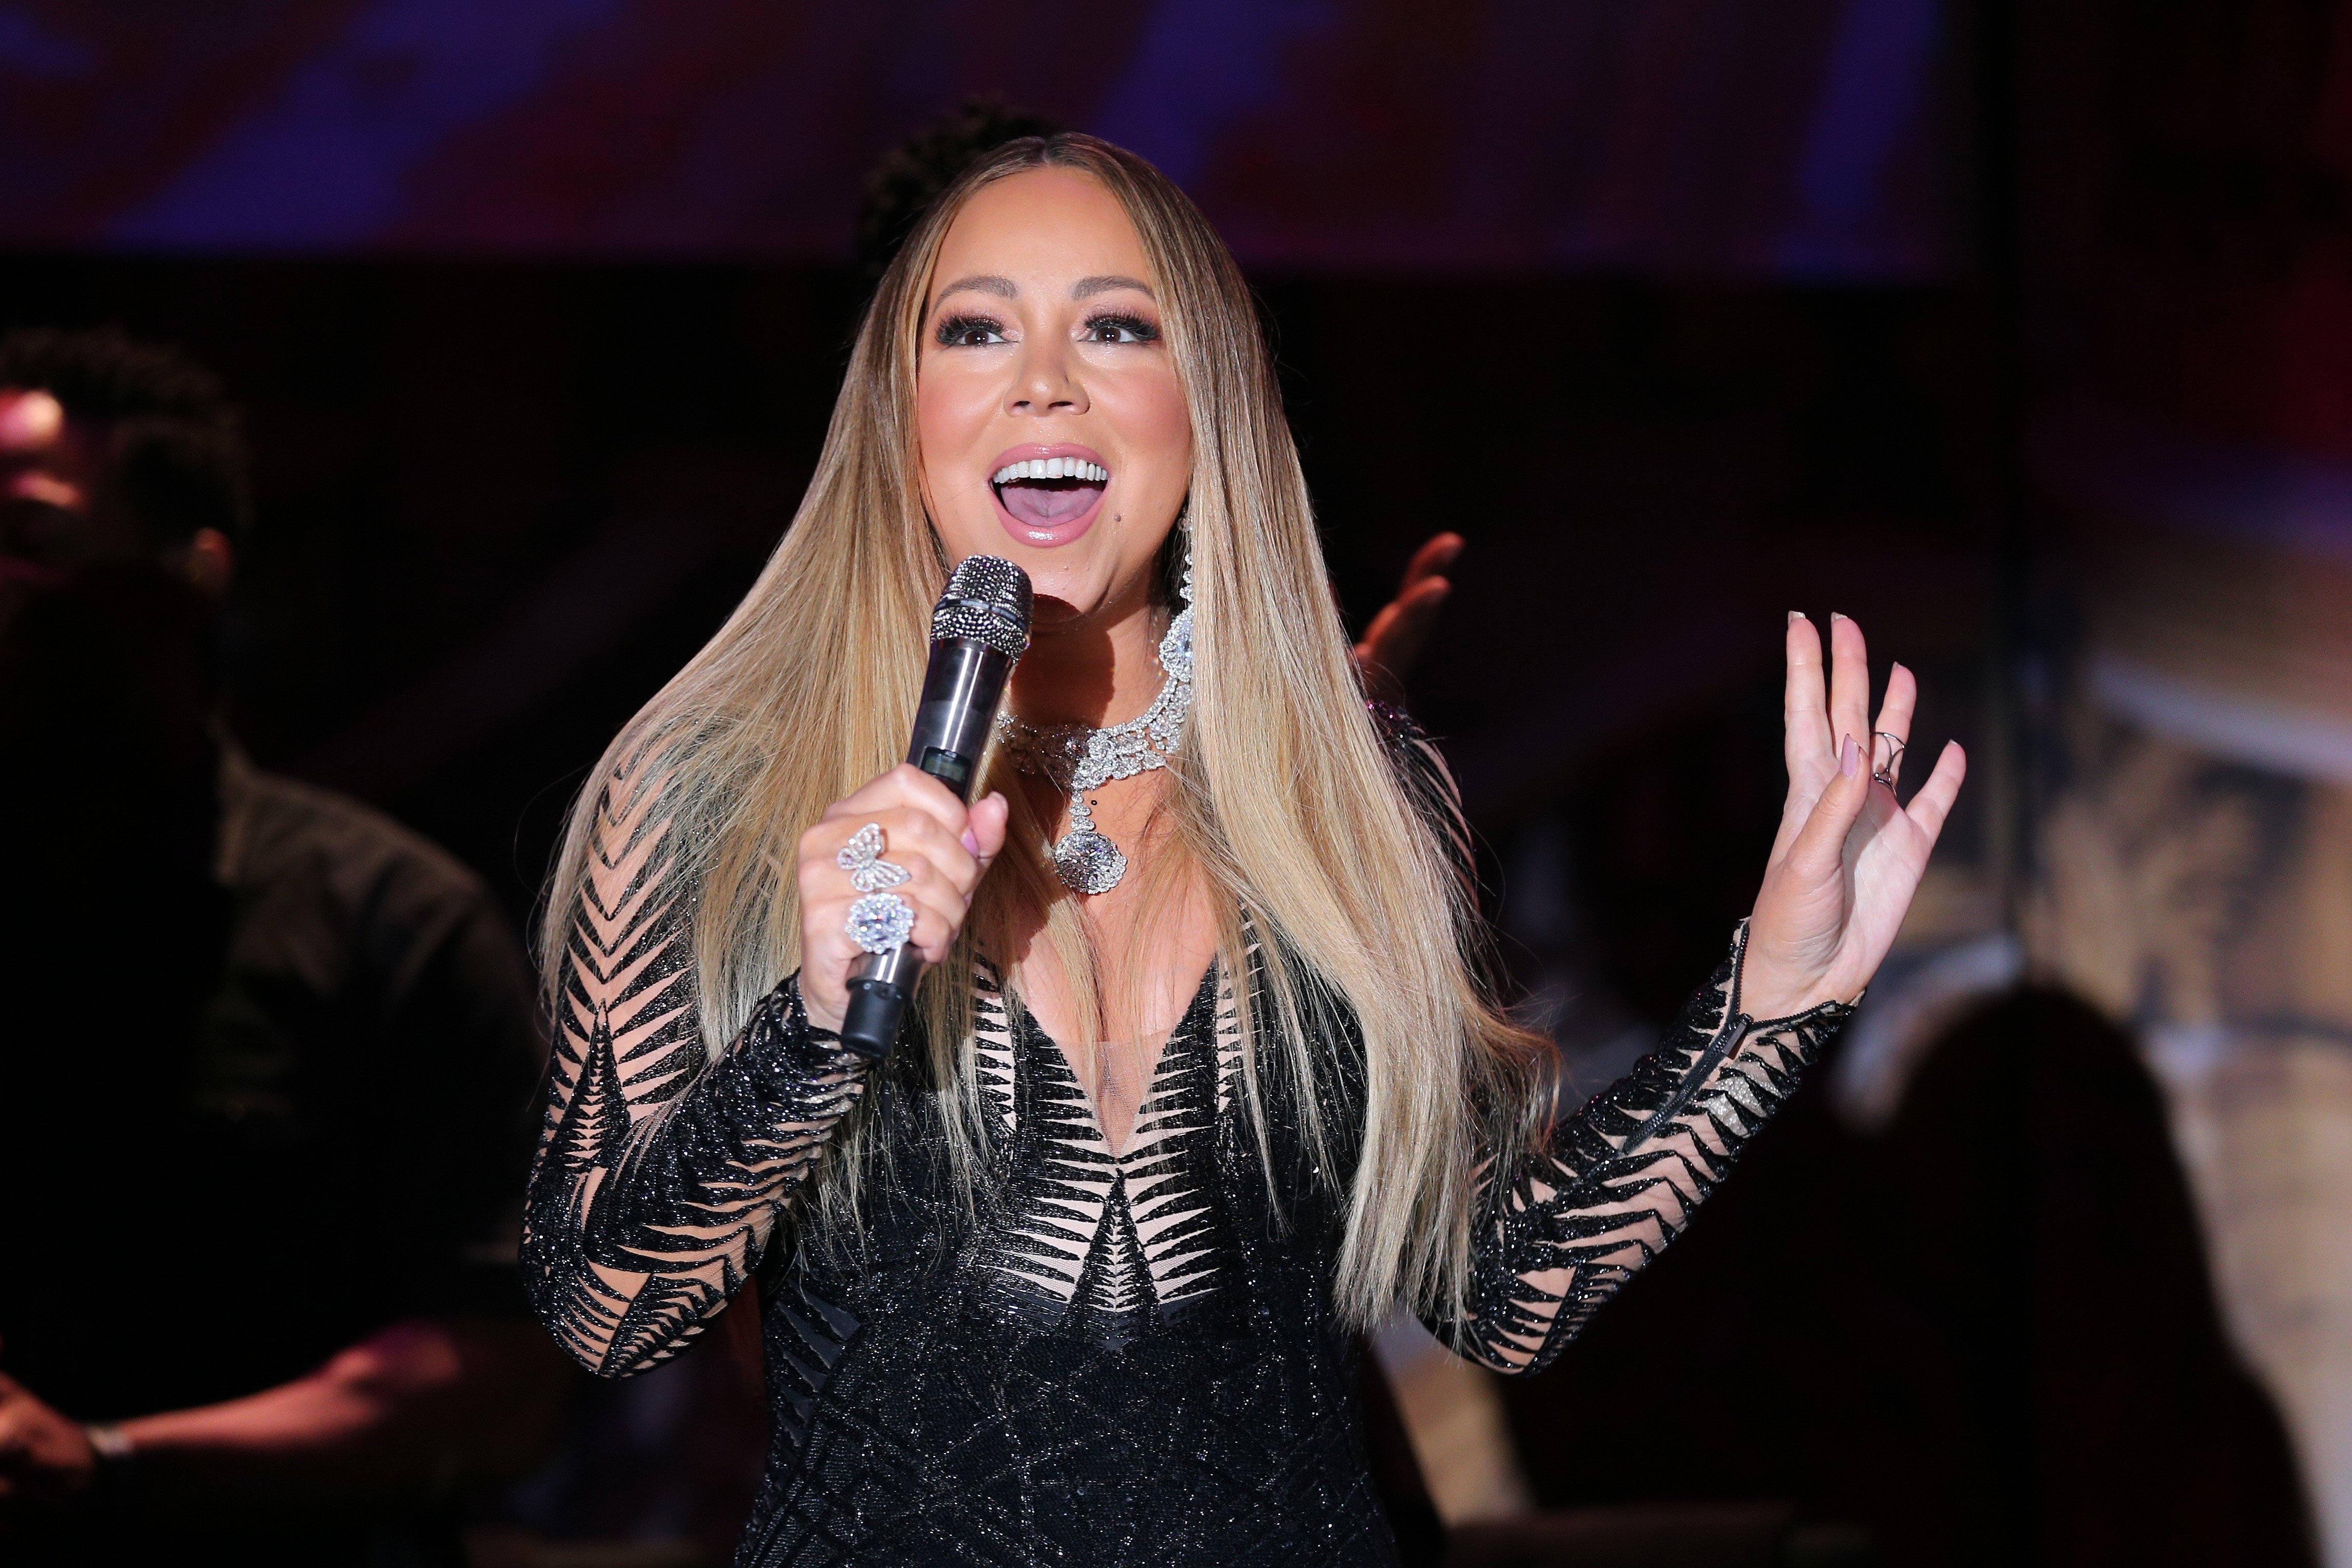 Mariah Carey performs at the amfAR Cannes Gala 2019 at Hotel du Cap-Eden-Roc on May 23, 2019 in Cap d'Antibes, France | Photo: GettyImages